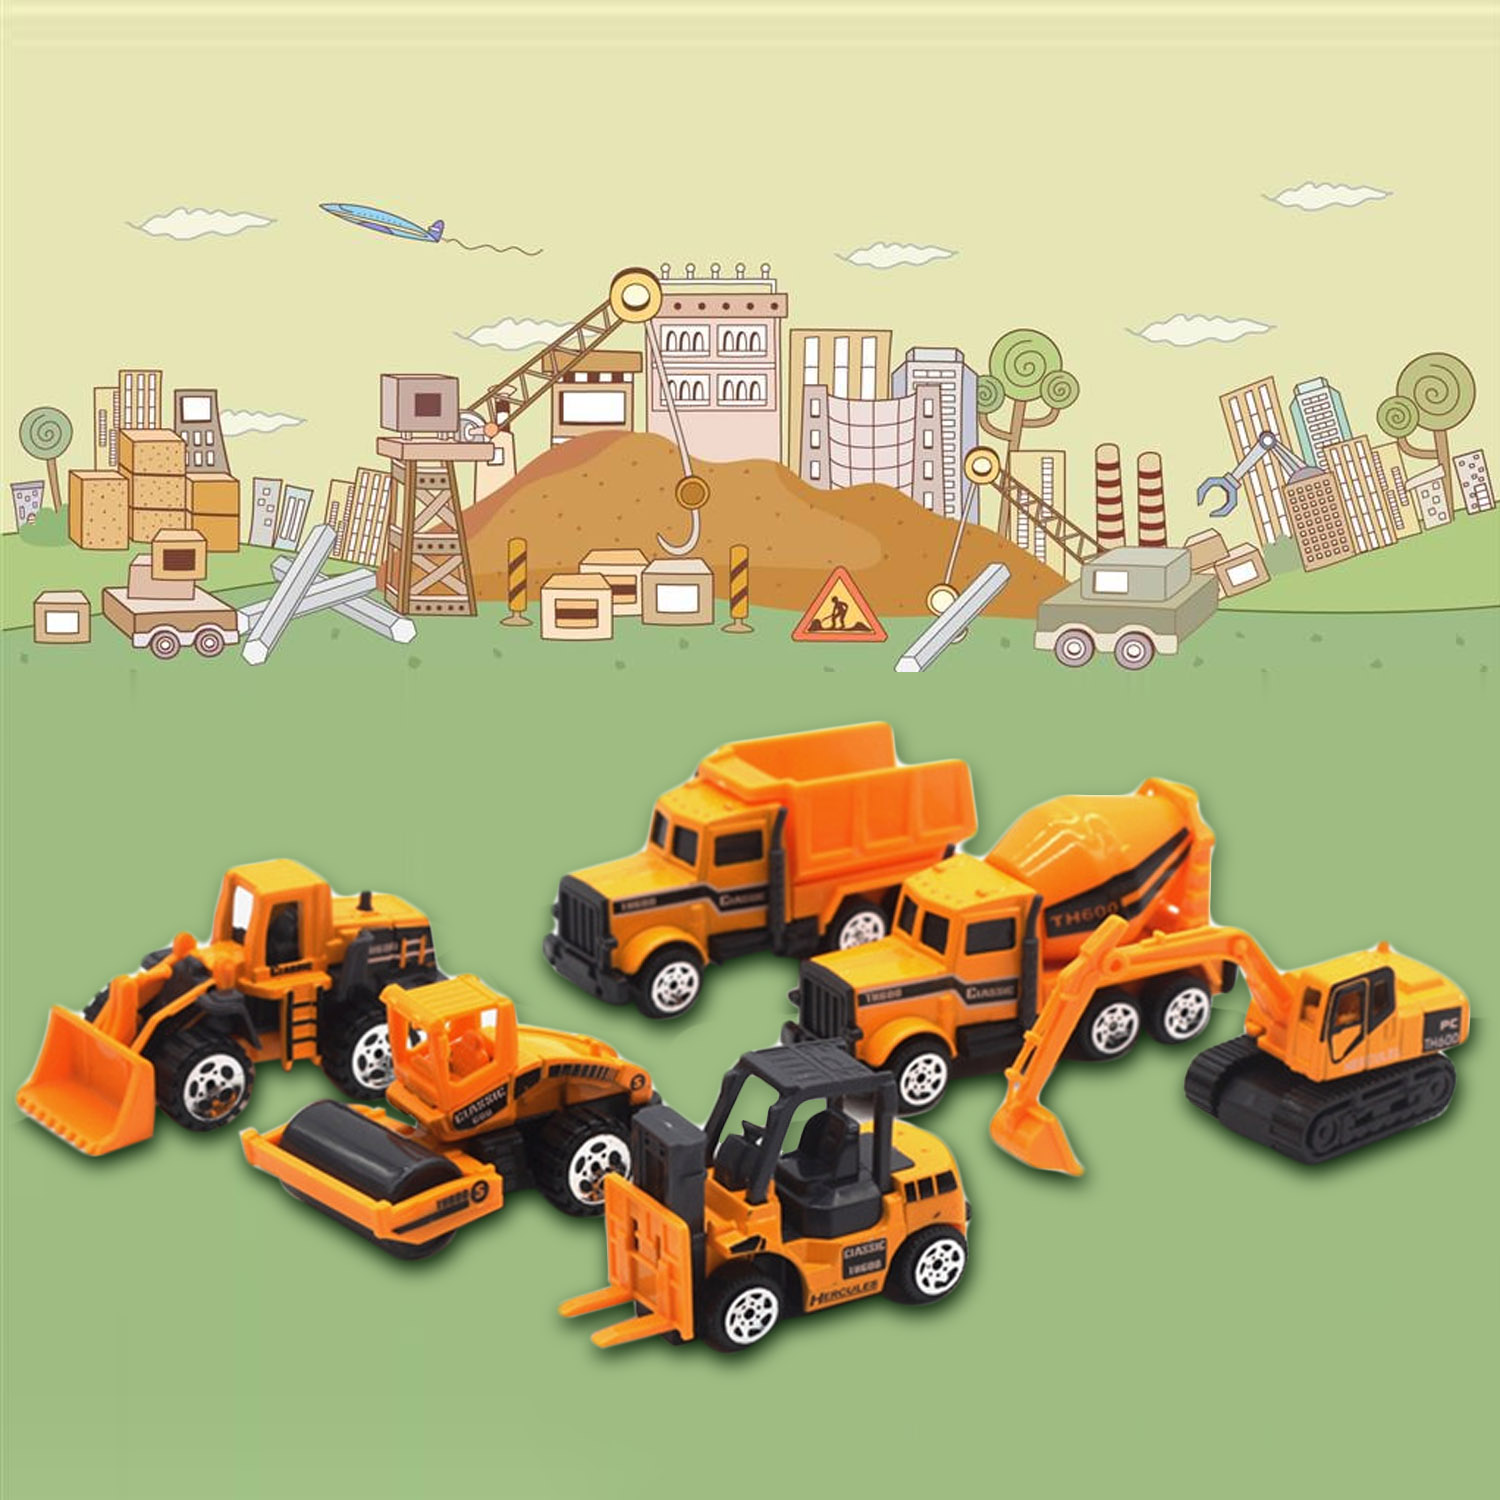 Satkago 6 PCS Mini Pull Back Truck Car Toy Construction Engineering Vehicle Toys for Children Boys Party Favors Kids Birthday